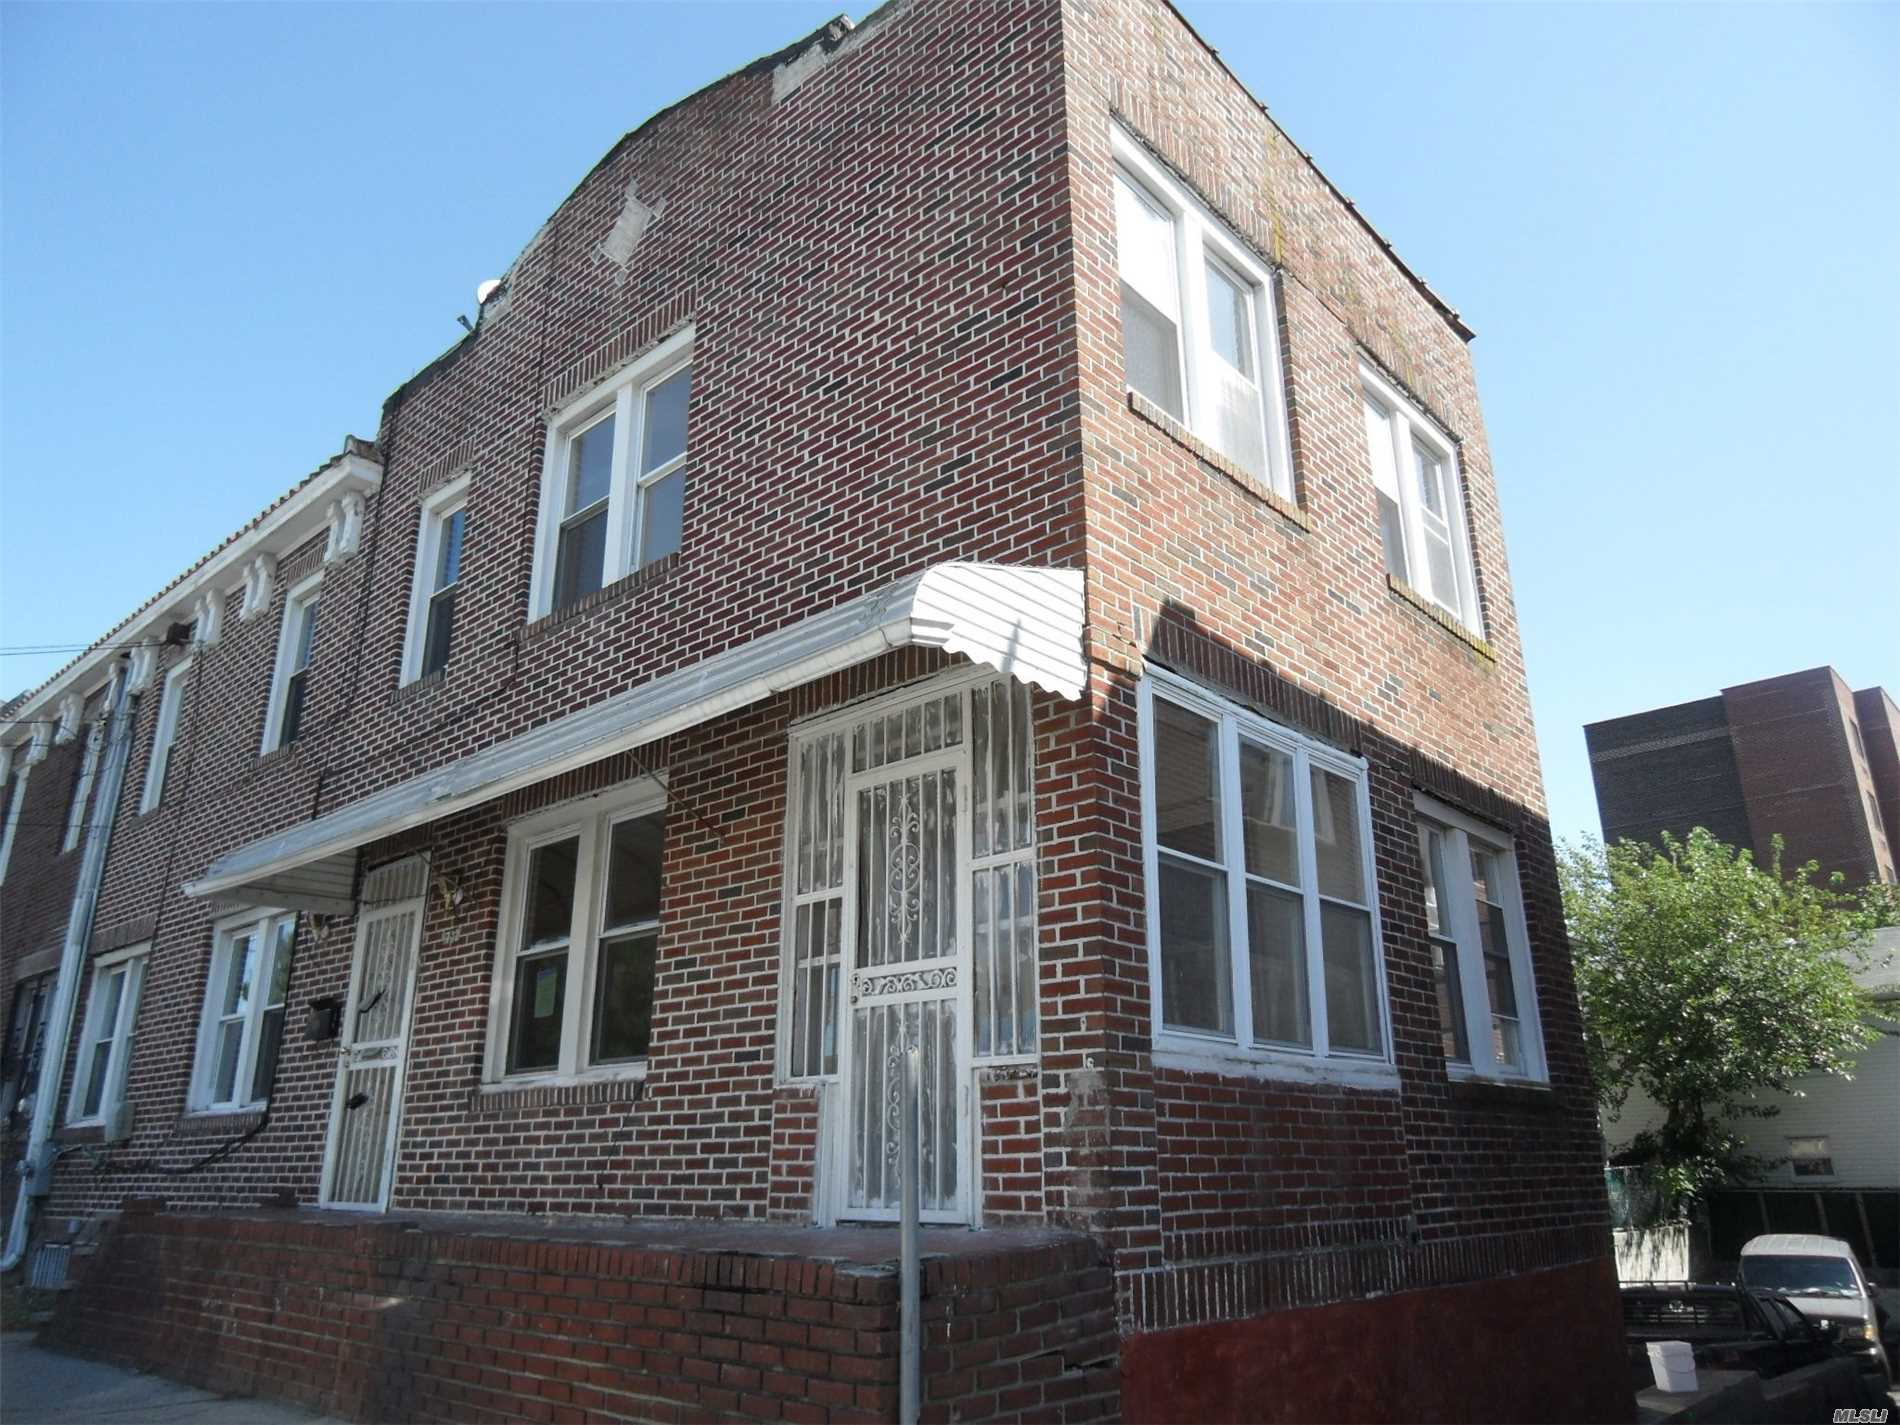 Amazing Opportunity In The Heart Of Far Rockaway! With Close Access To Tons Of Shops, Restaurants As Well As The A Train, Lirr, And Of Course The Beach! This Brick Property Boasts 3 Bedroom, 1.5 Baths A Basement And Garage With Living And Dining Room! Lots Of Sunlight Streaming In.... Let Your New Home Be Your Own Island In The Sun!